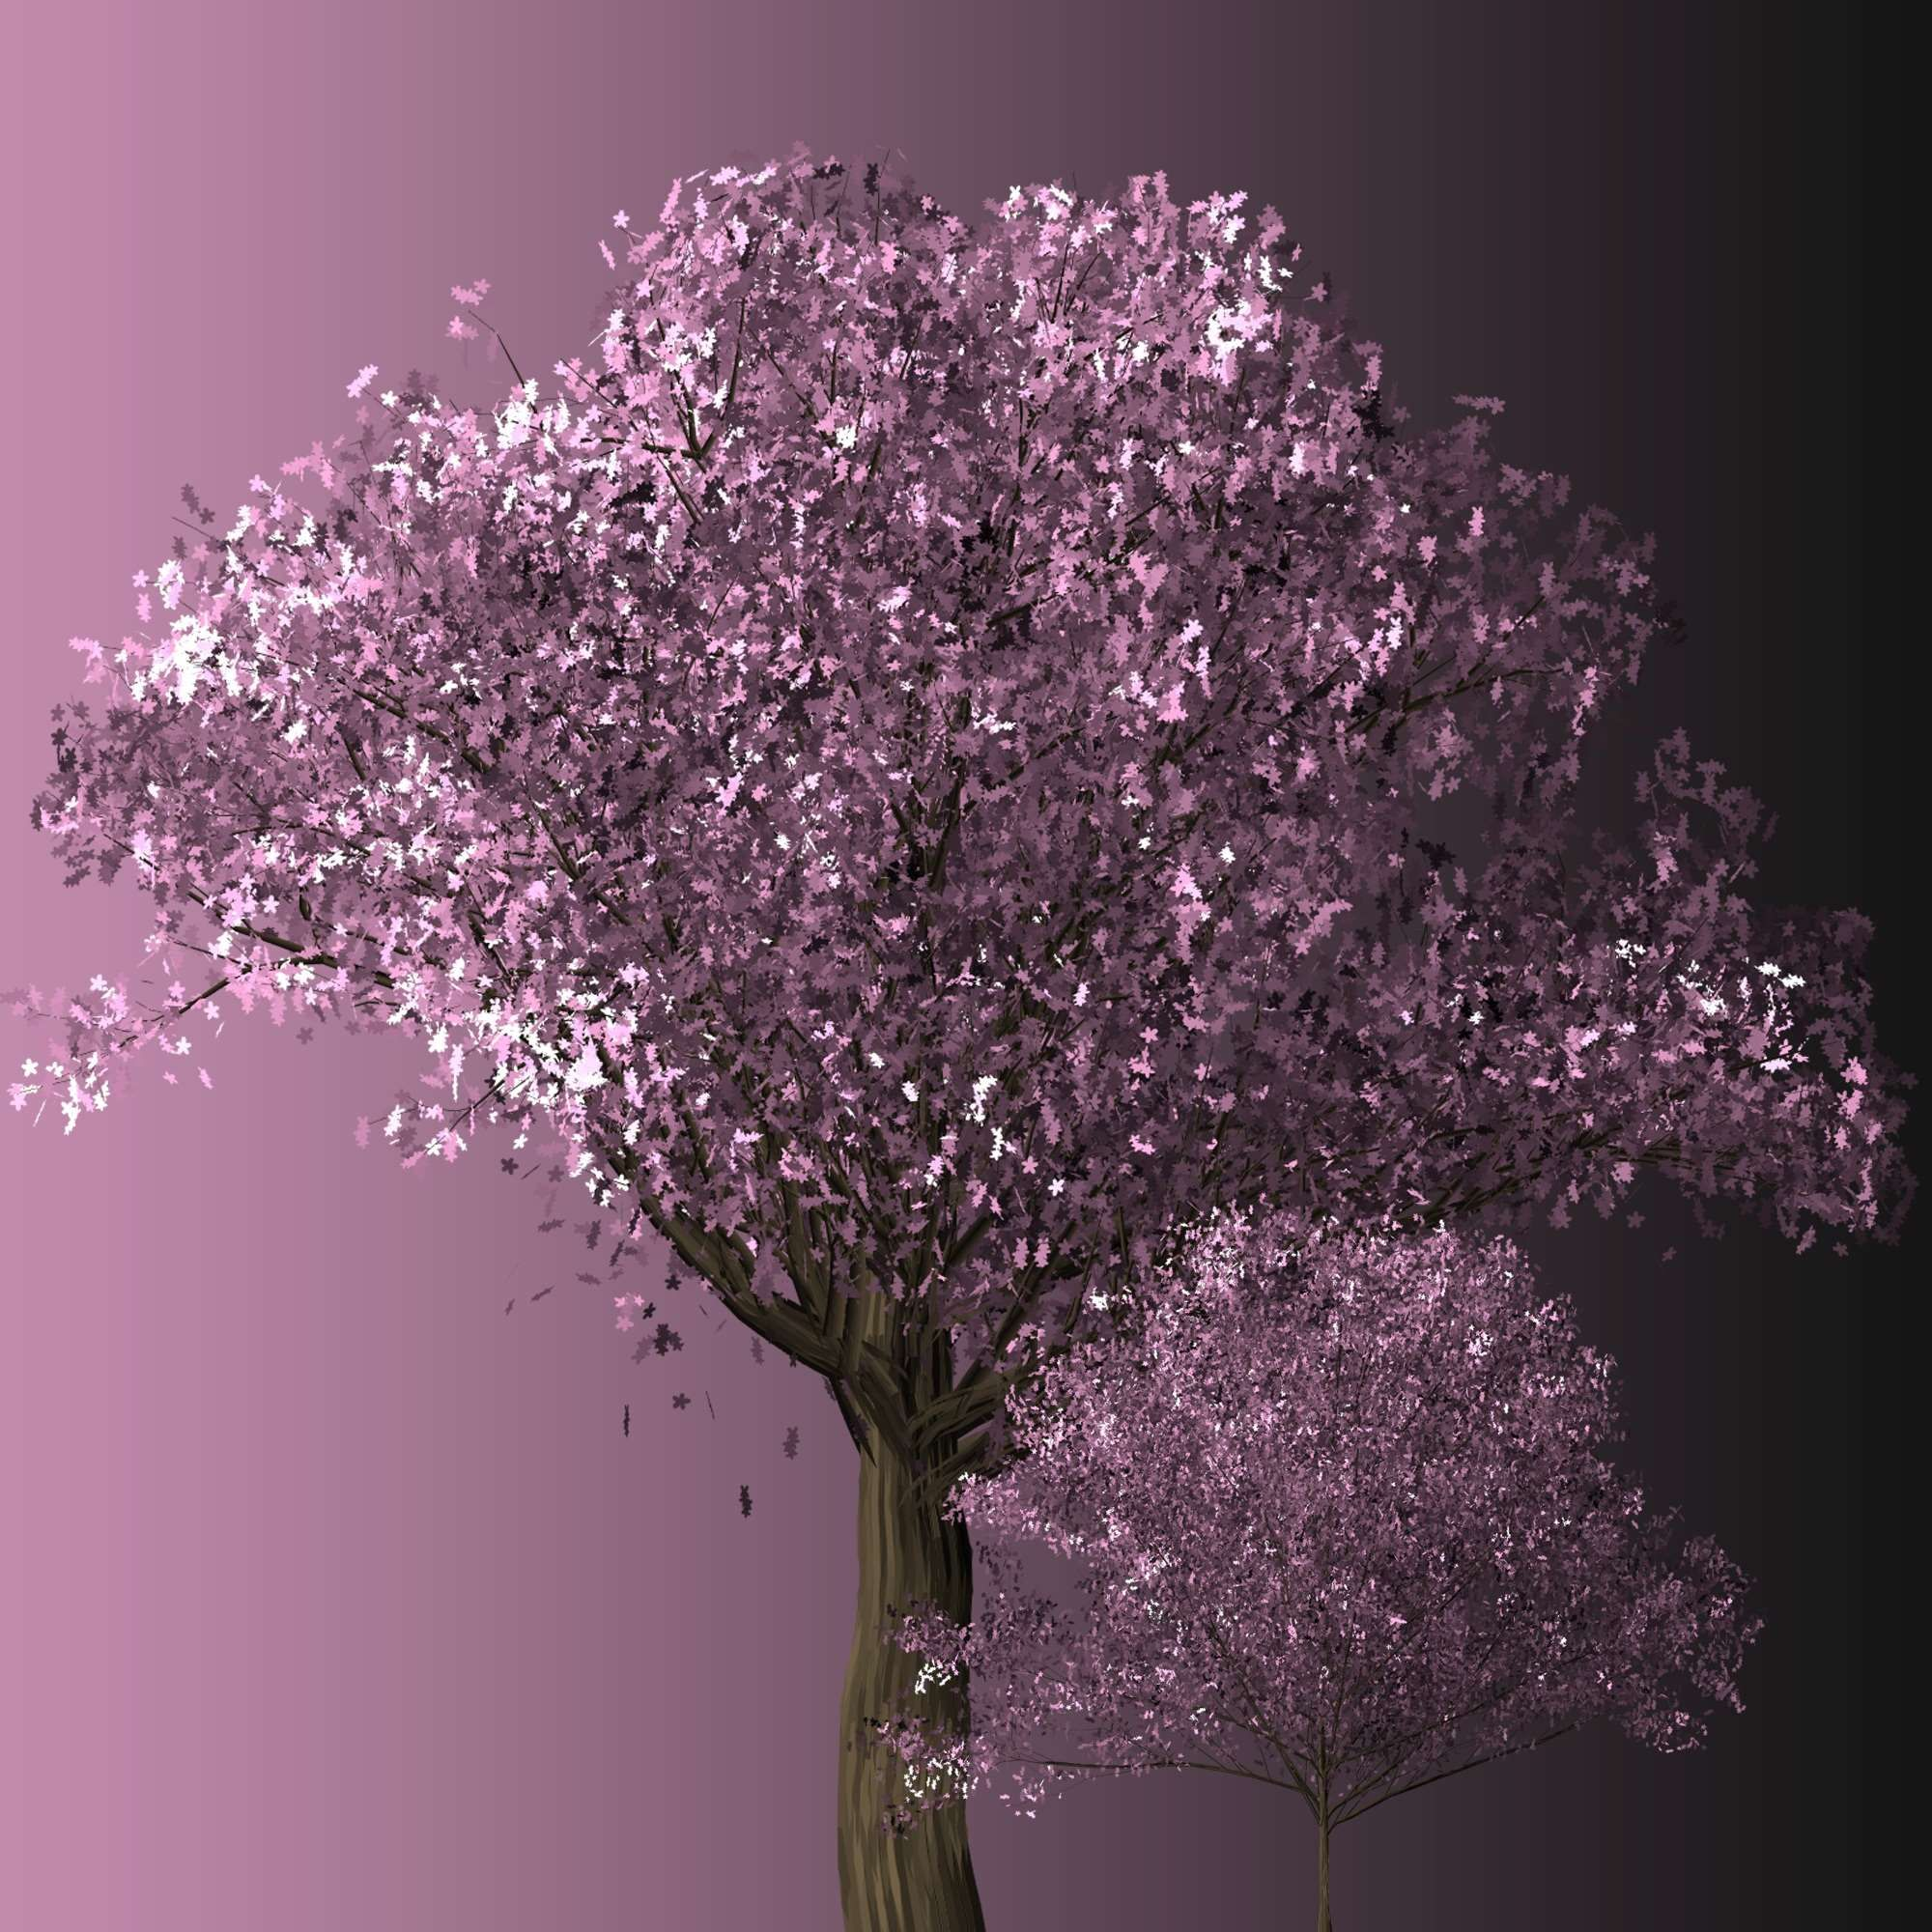 Background Bloom Blooming Blossom Blossoming Botanical Botany Branch Branches Bud Budding Cherry Ch Purple Trees Blossom Trees Cherry Blossom Tree